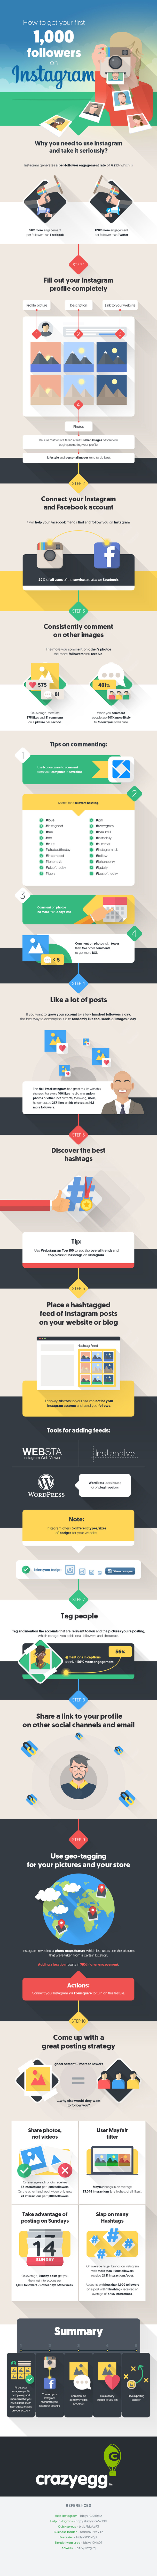 Get Followers on Instagram Infographic